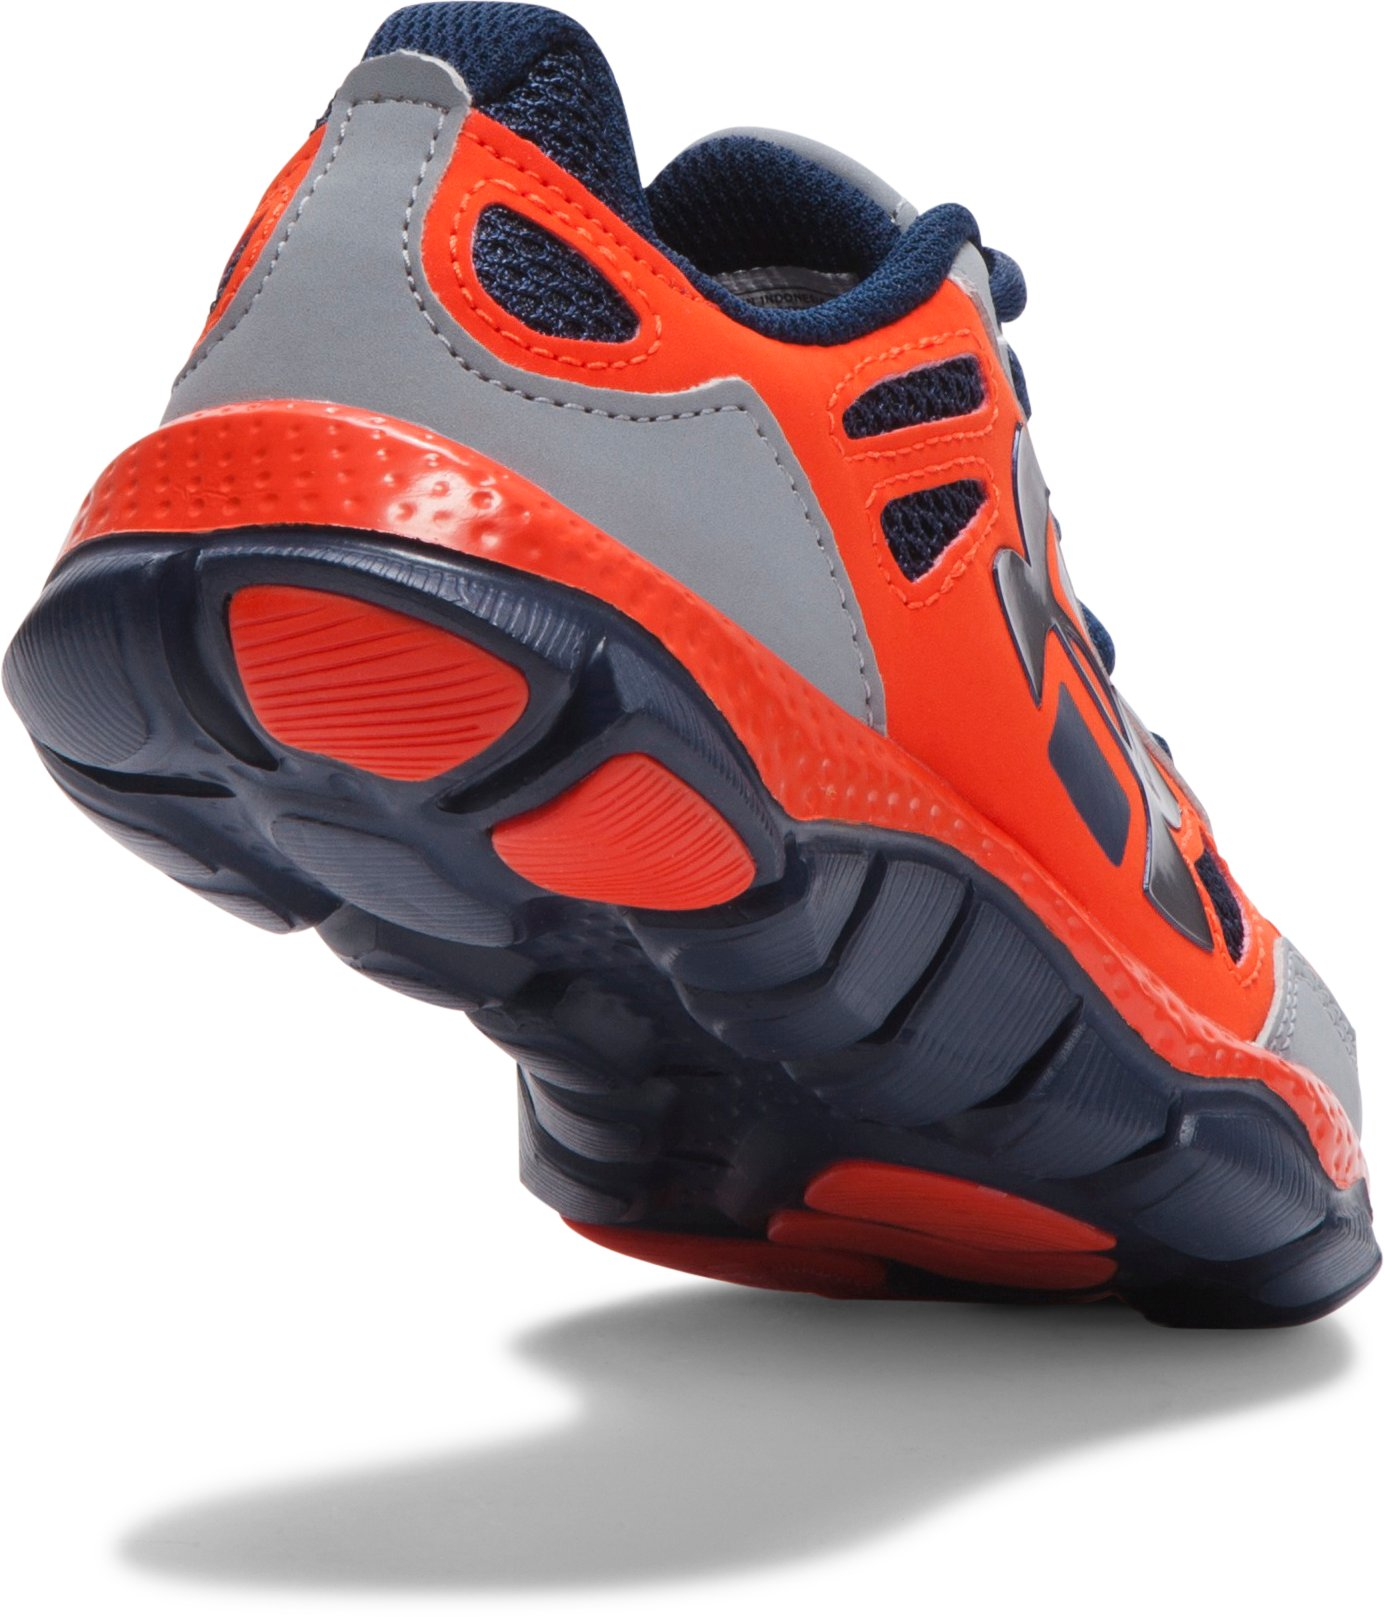 Boys' Pre-School UA Engage BL Shoes, Steel